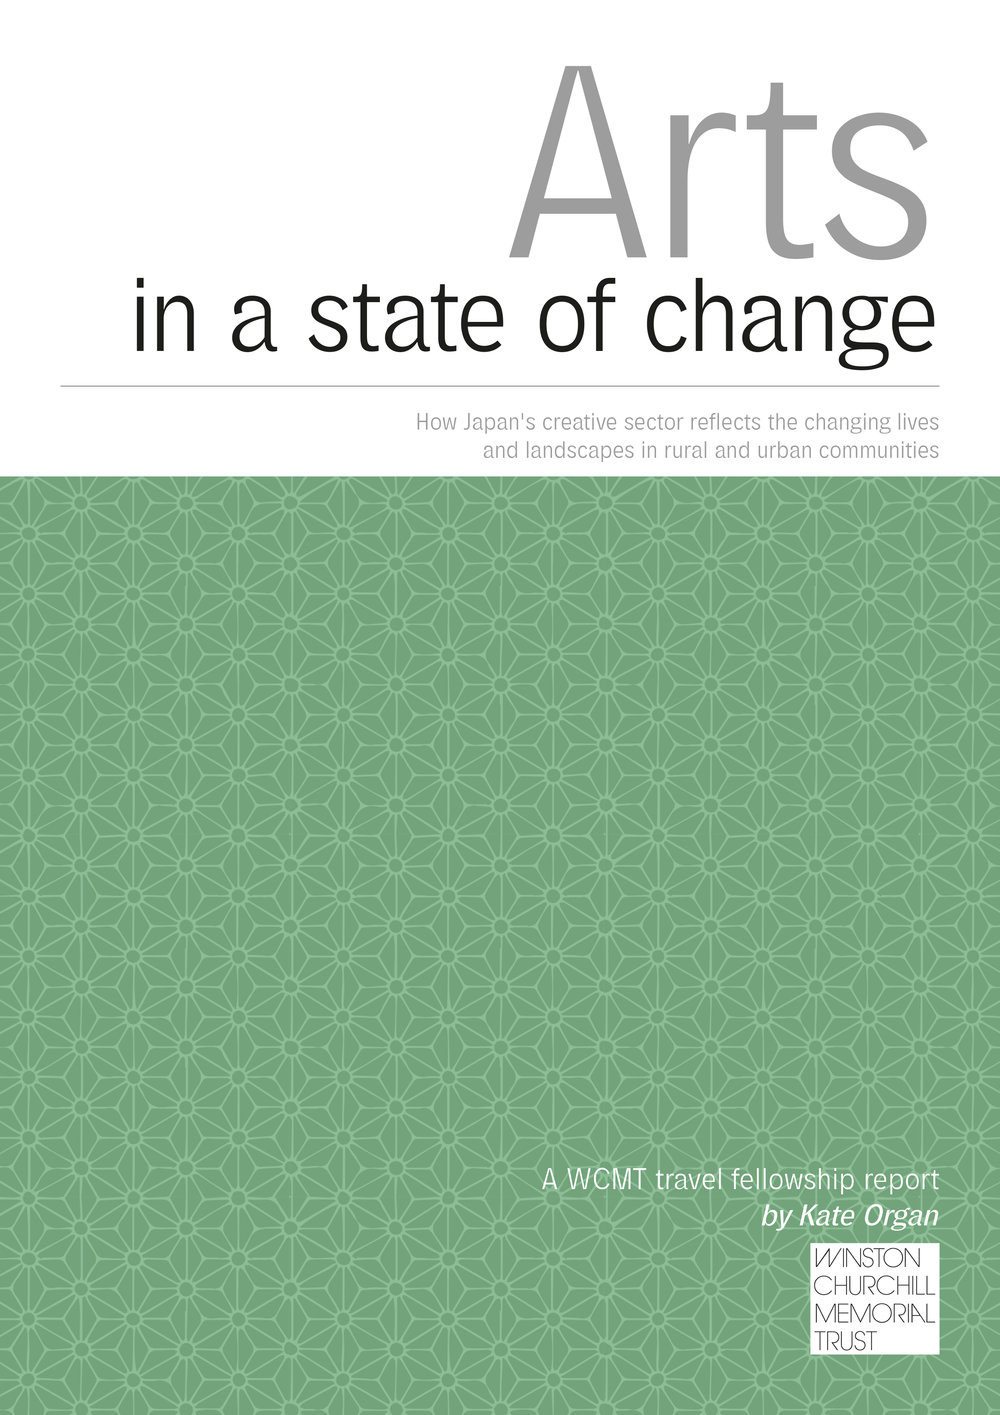 Arts in a state of change FINAL-1.jpg